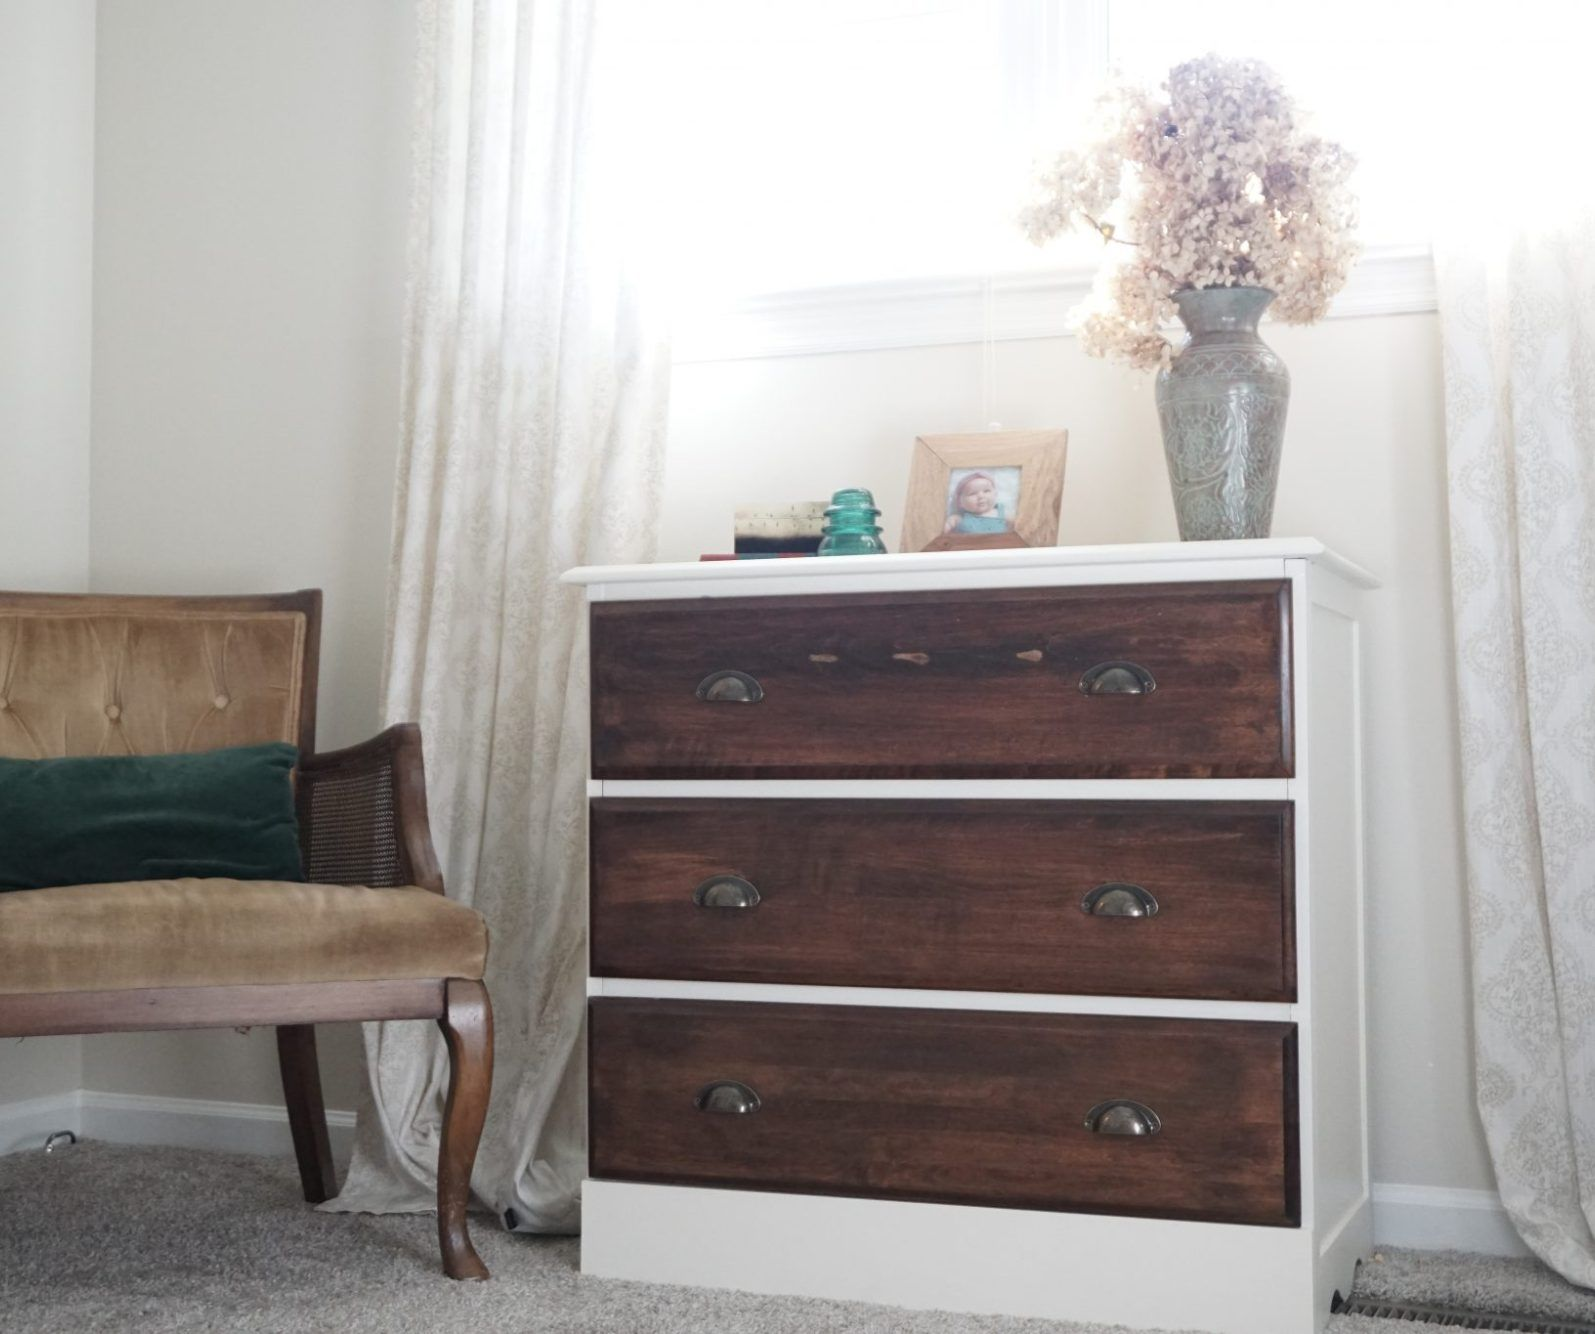 Cherry Dresser Makeover to Natural Wood Finish Bedroom